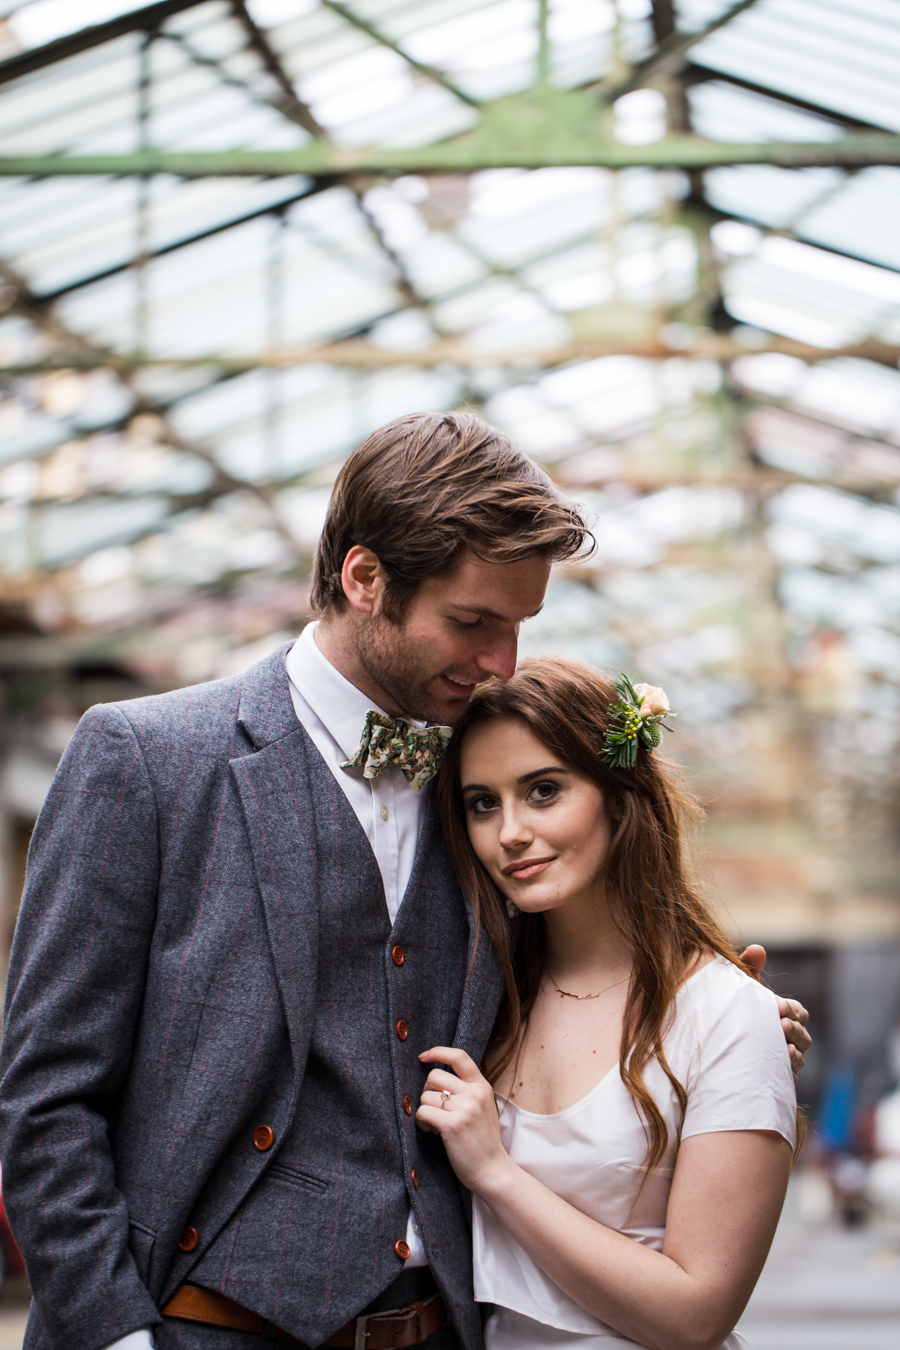 Lucy Long Photography – Industrial Botanical shoot-7434